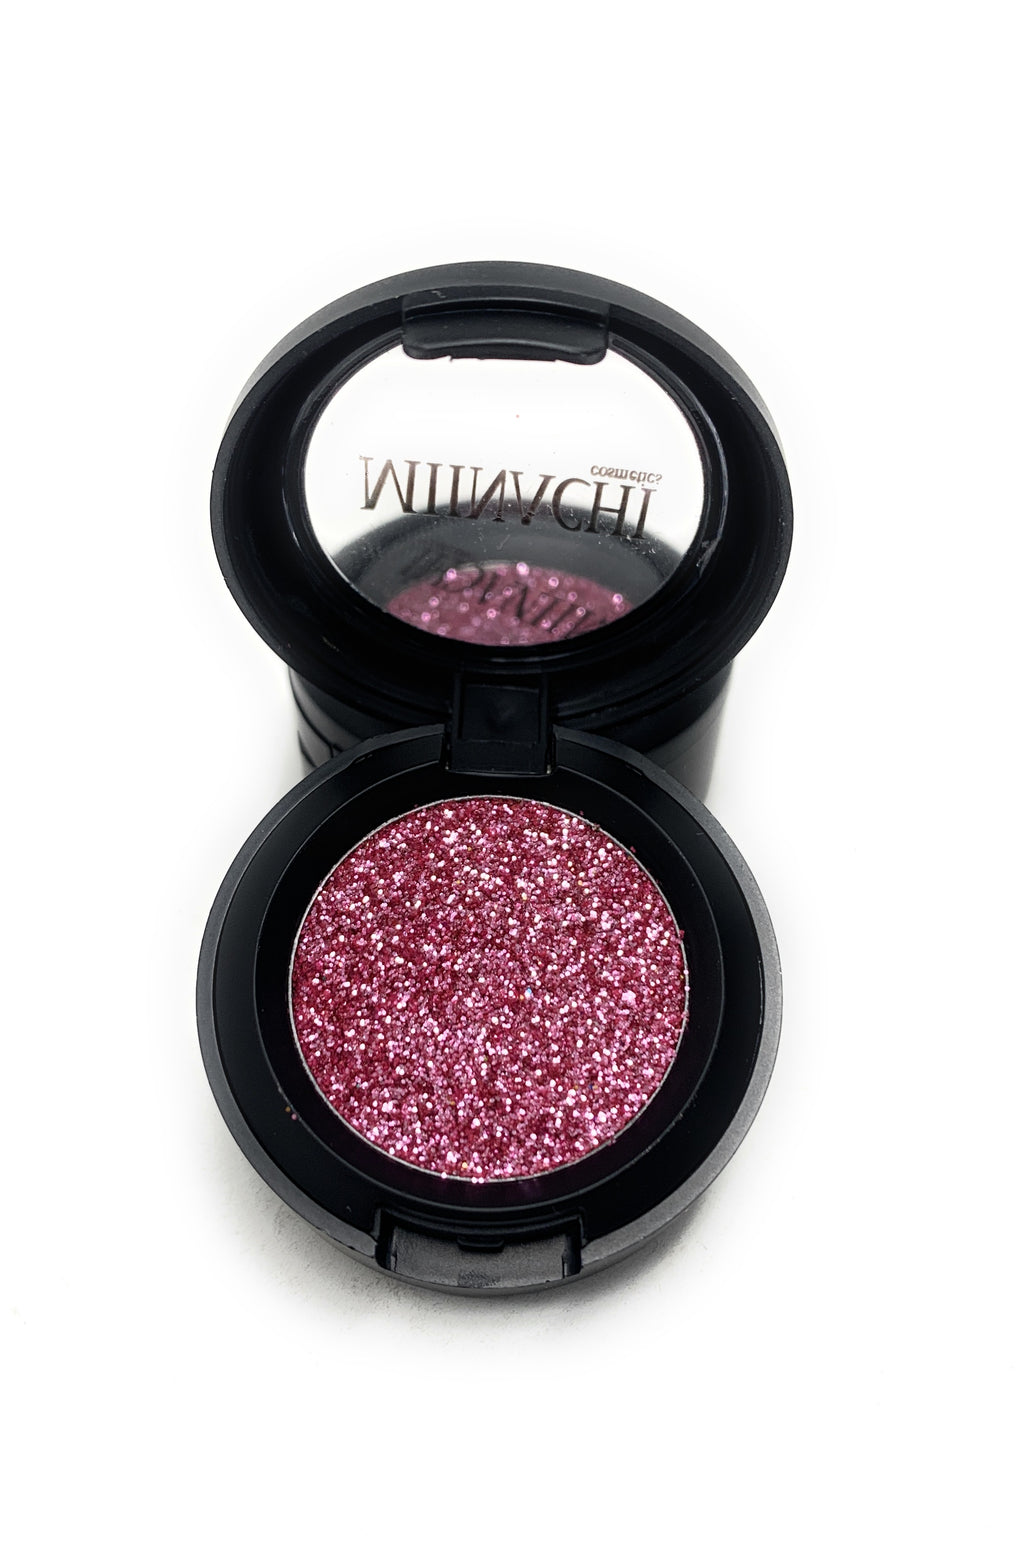 Single Pressed Glitter in the shade Cherry Bomb, No Glue Needed, In Compact, Pigmented, No Fall Out, Glitter, Cosmetic Grade Glitter